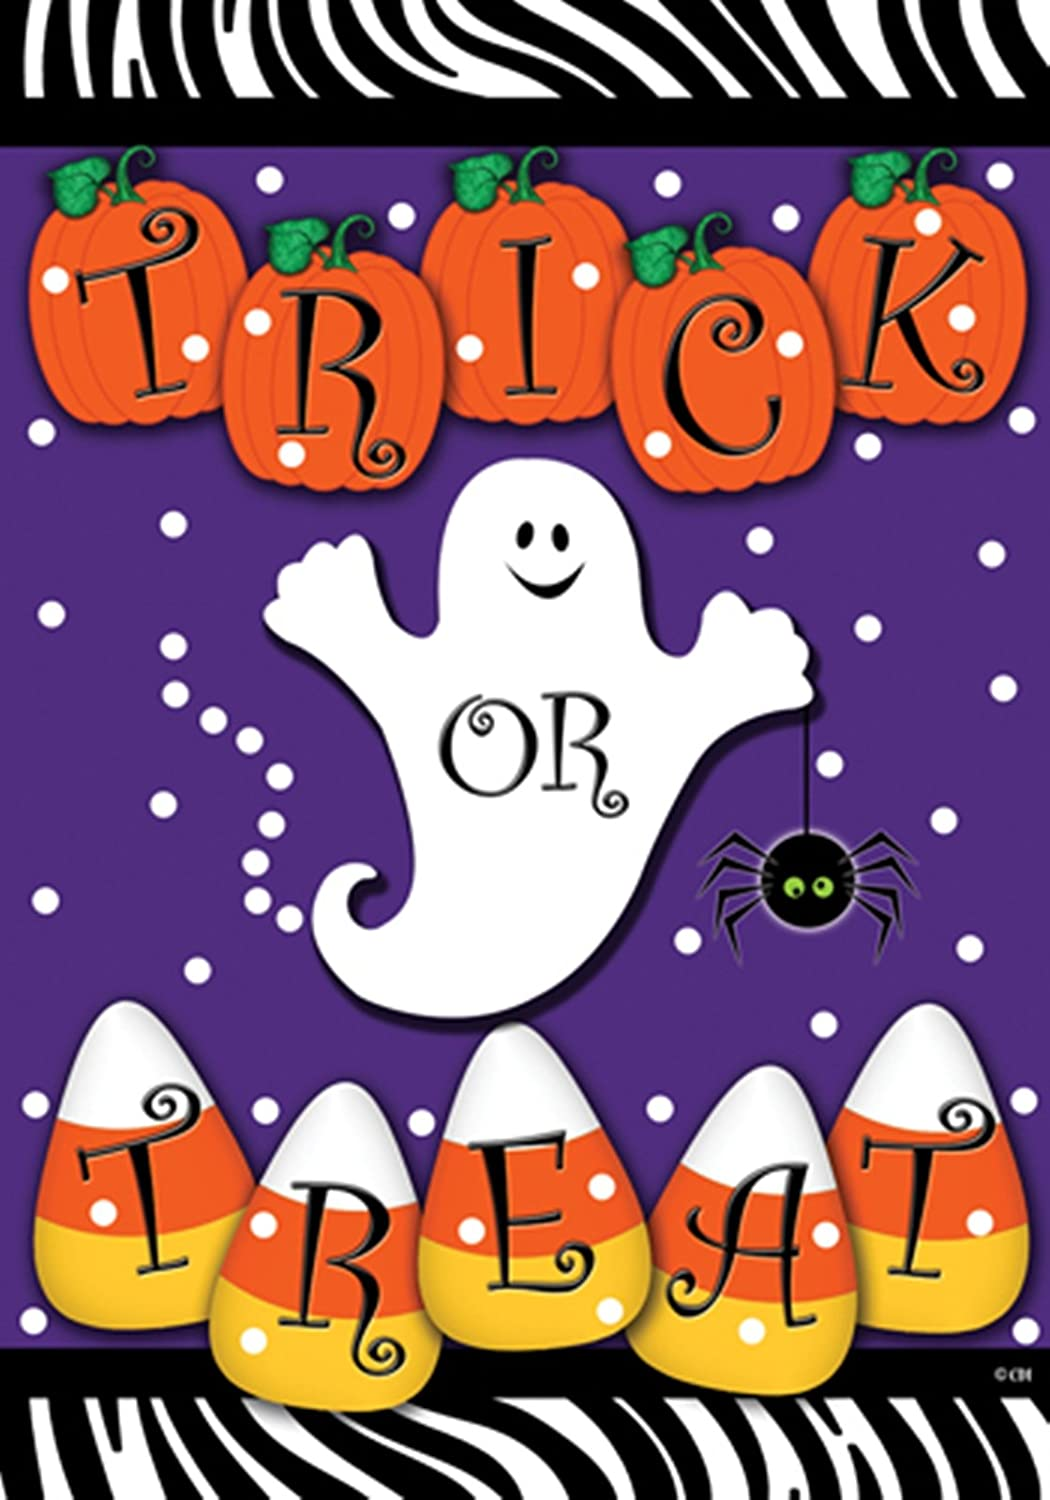 Trick Or Treat   Halloween Ghost Pumpkins And Candy Corn Garden Size 12 X  18 Inch Decorative Flag   Garden Flag Size Is 12 In Wide X 18 In Long Fits  ...